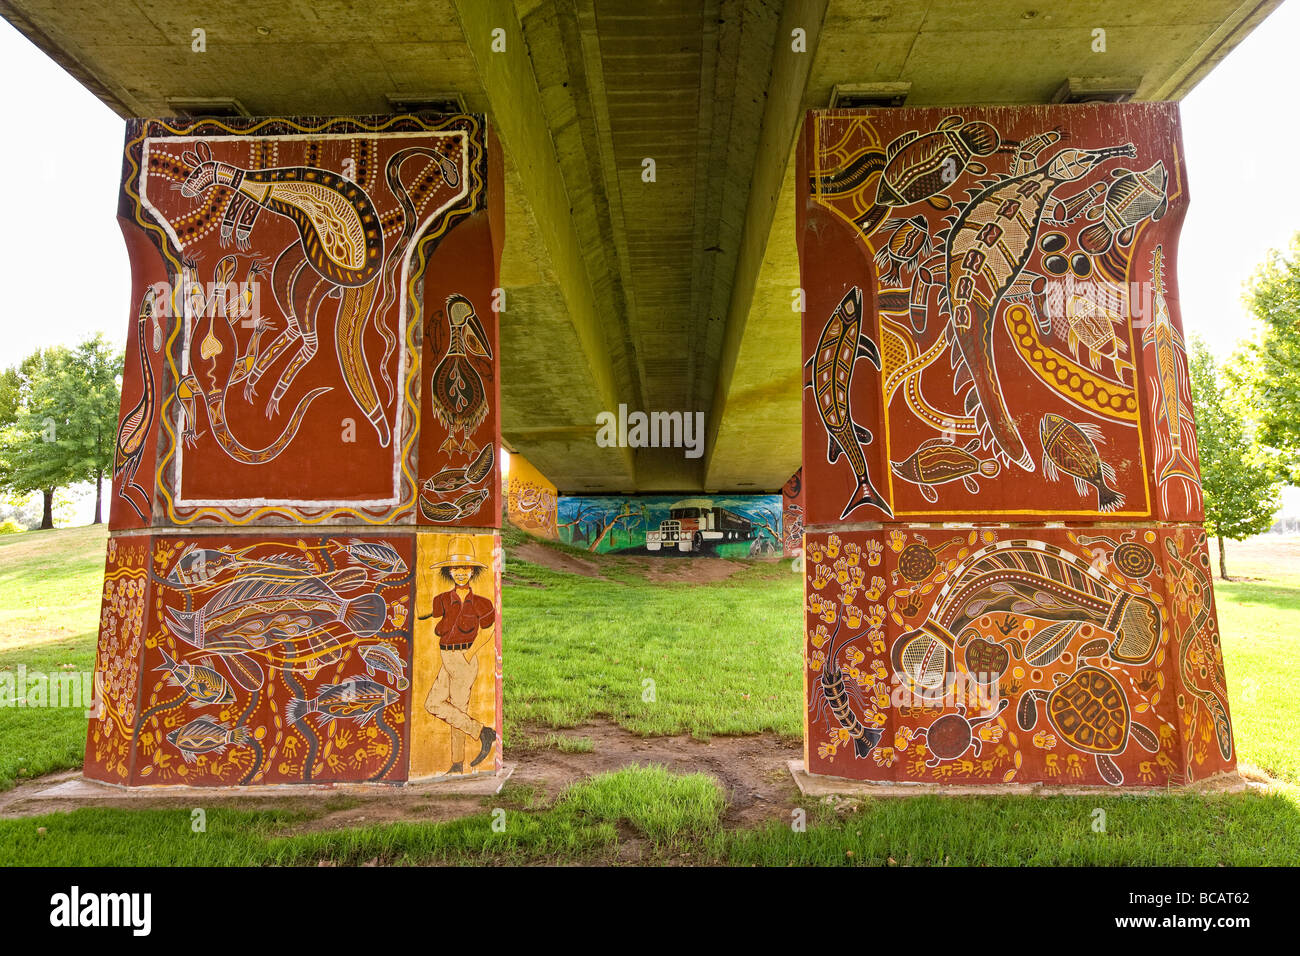 Outdoor art works painted on pylons of bridge spanning Lachlan River at Cowra NSW Australia - Stock Image